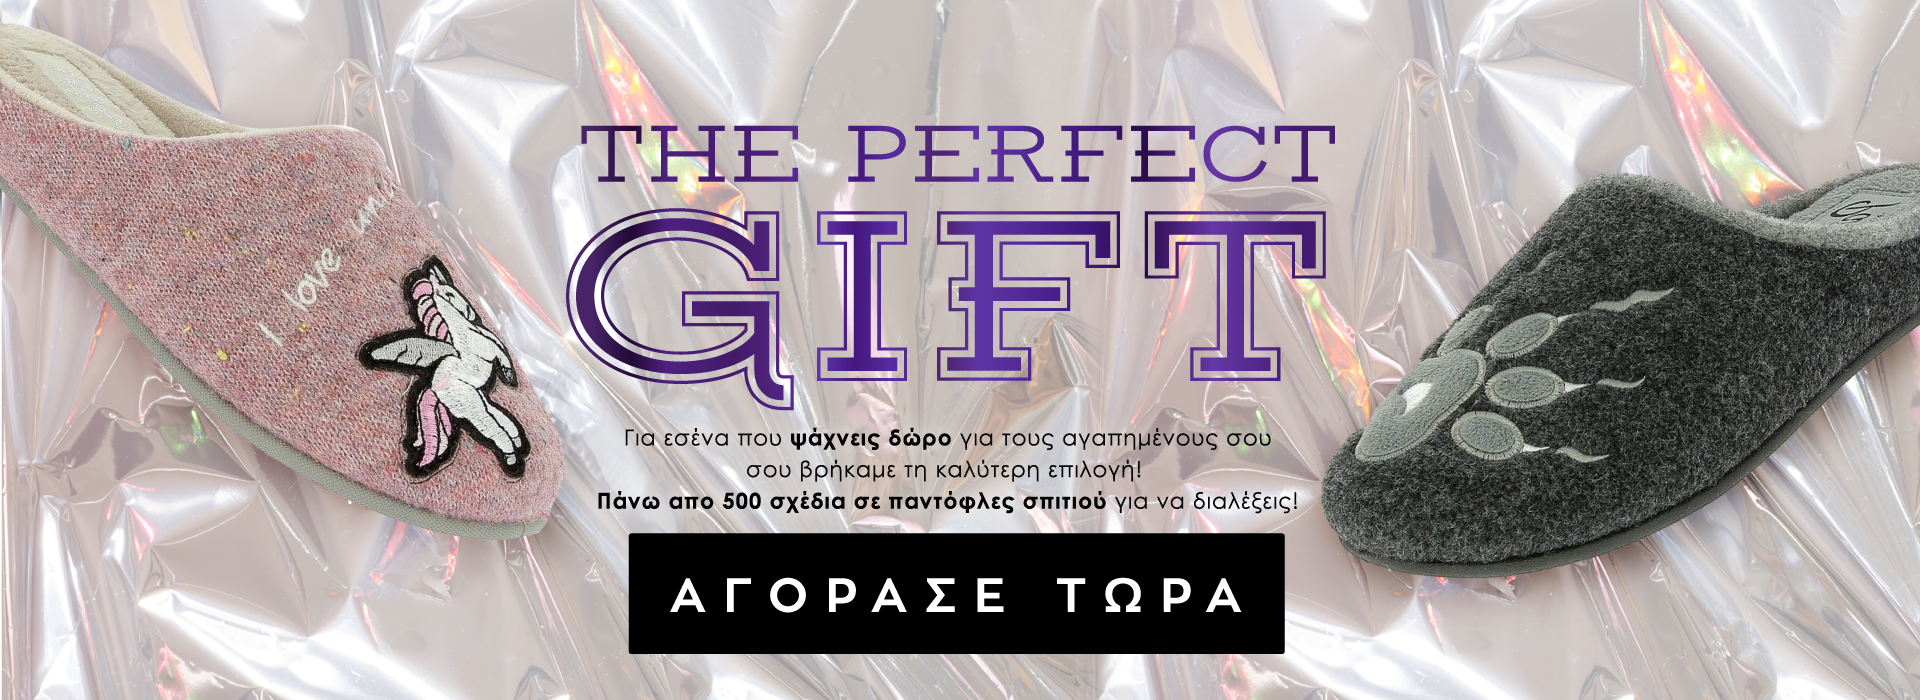 The Perfect Gift | Parex